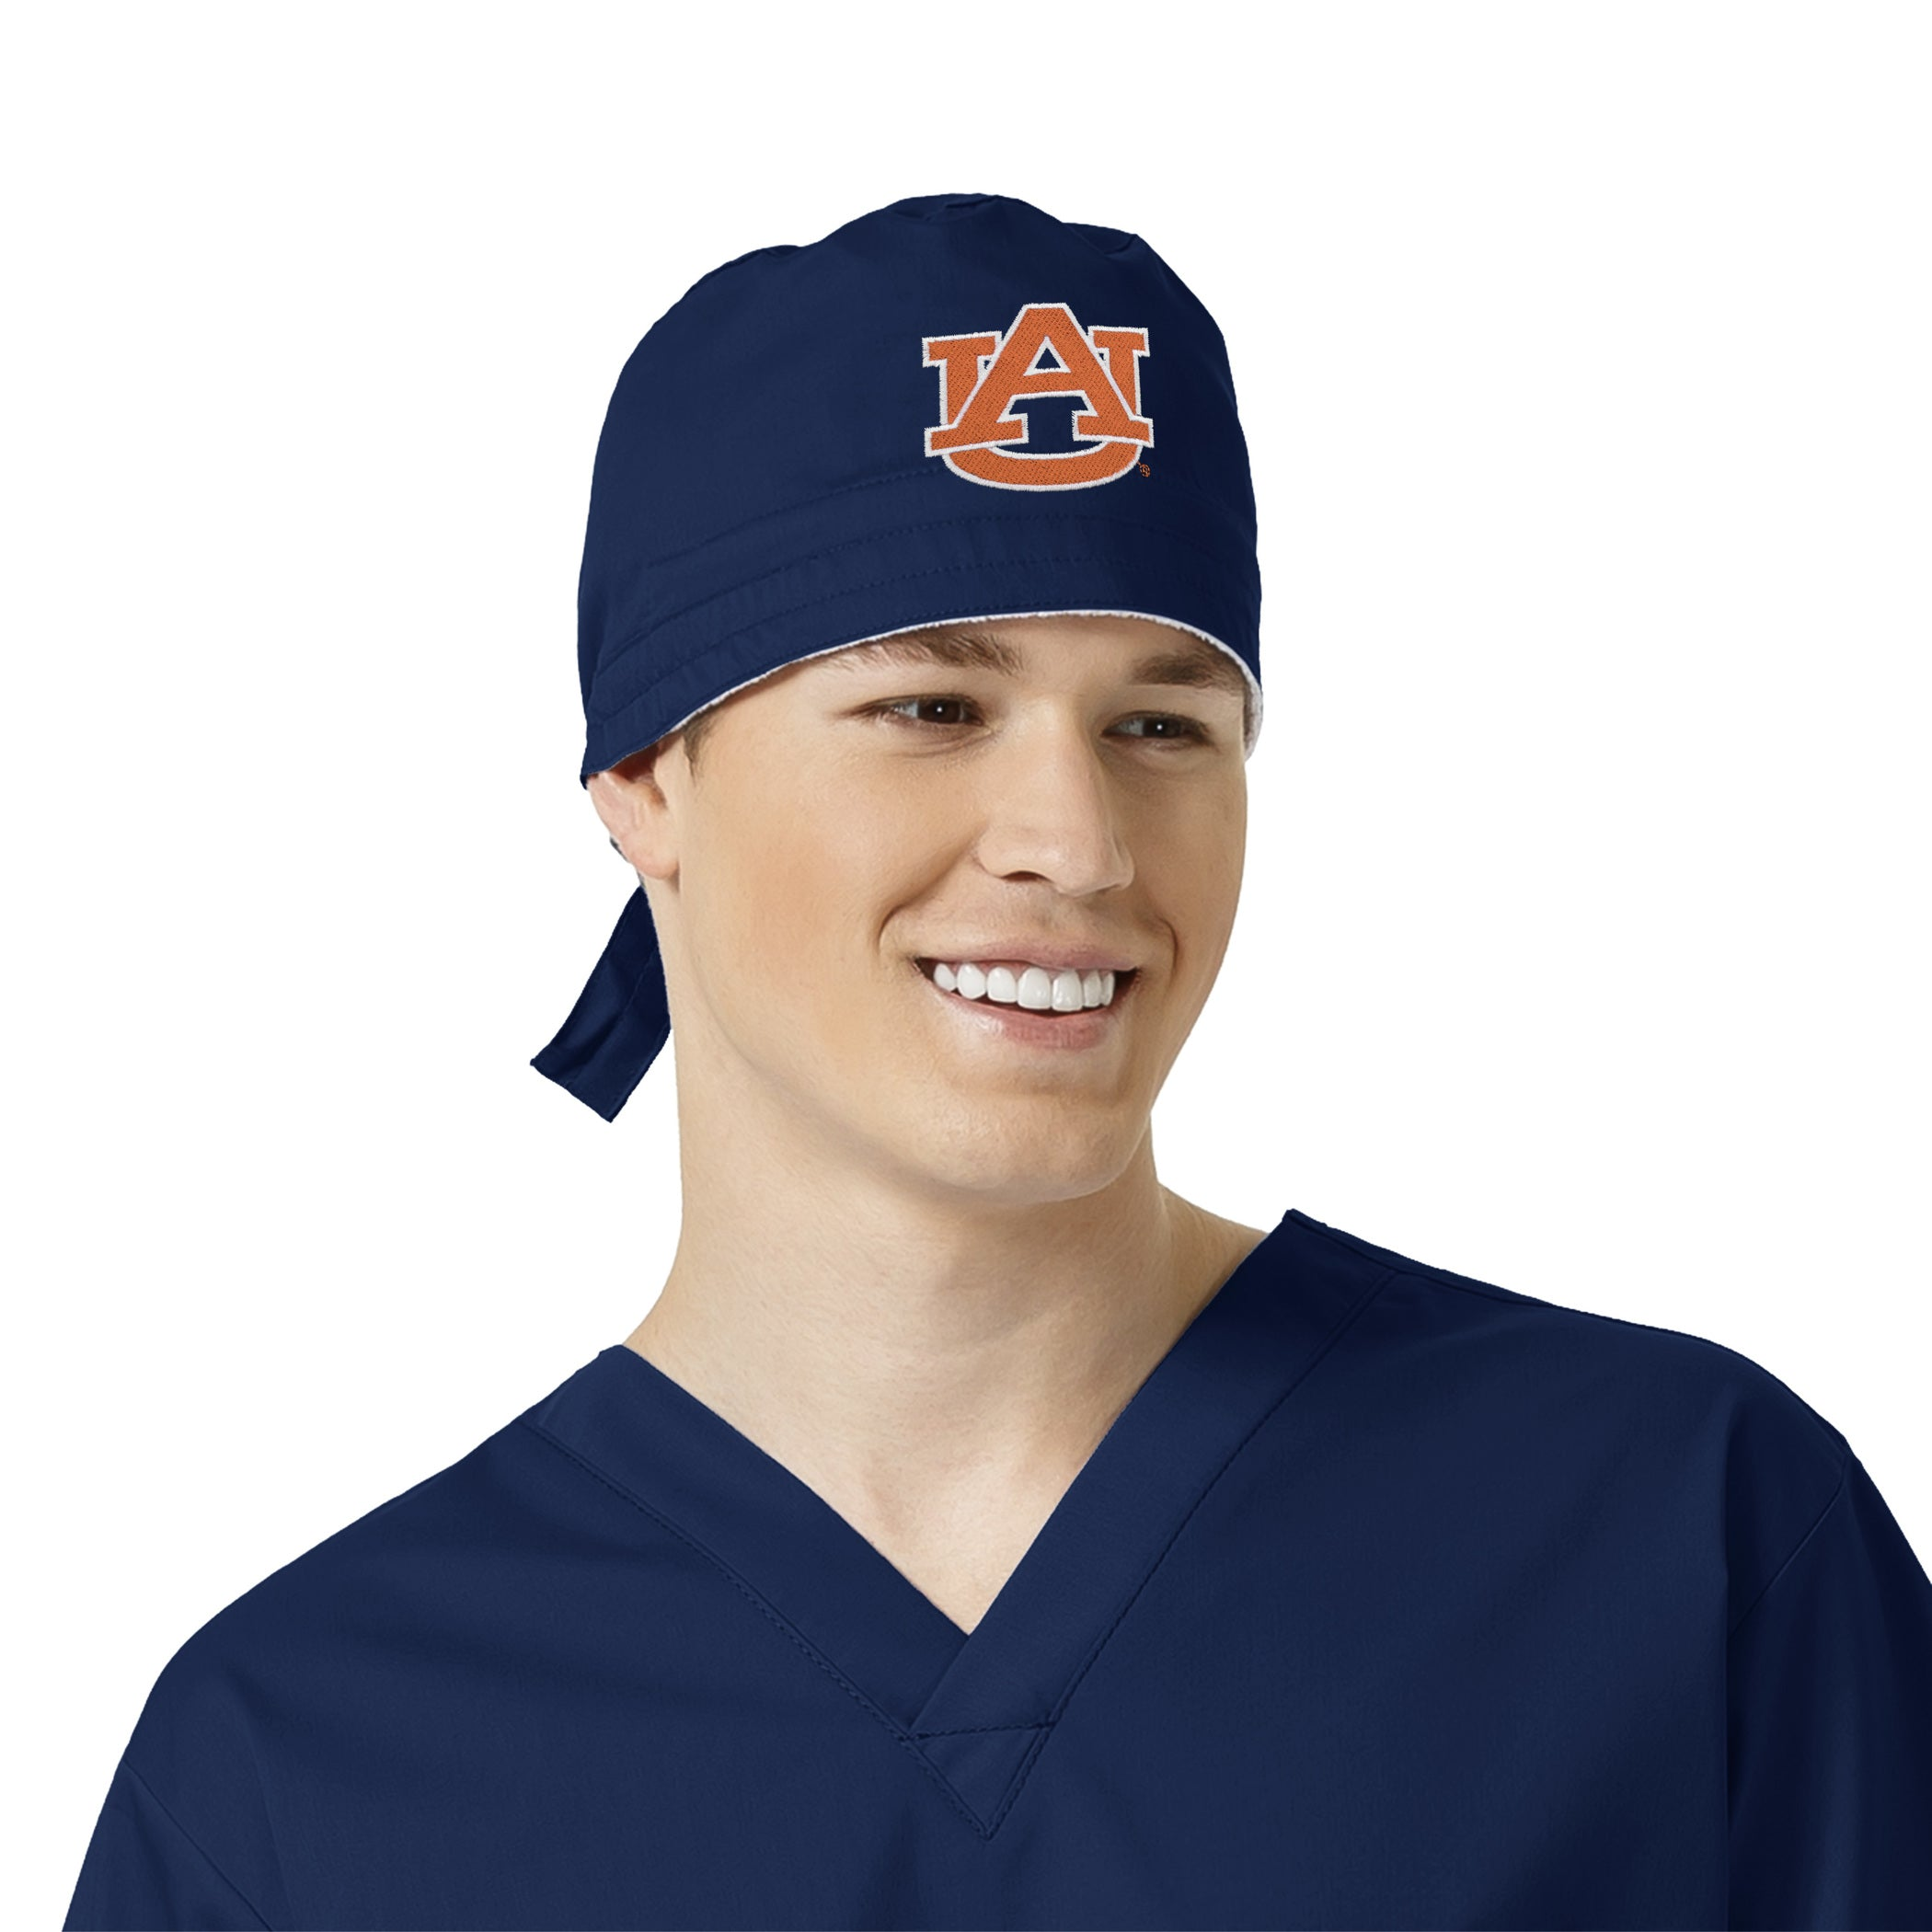 eff1d0a80 Auburn Tigers Unisex Solid Scrub Rally Cap with back tie ...